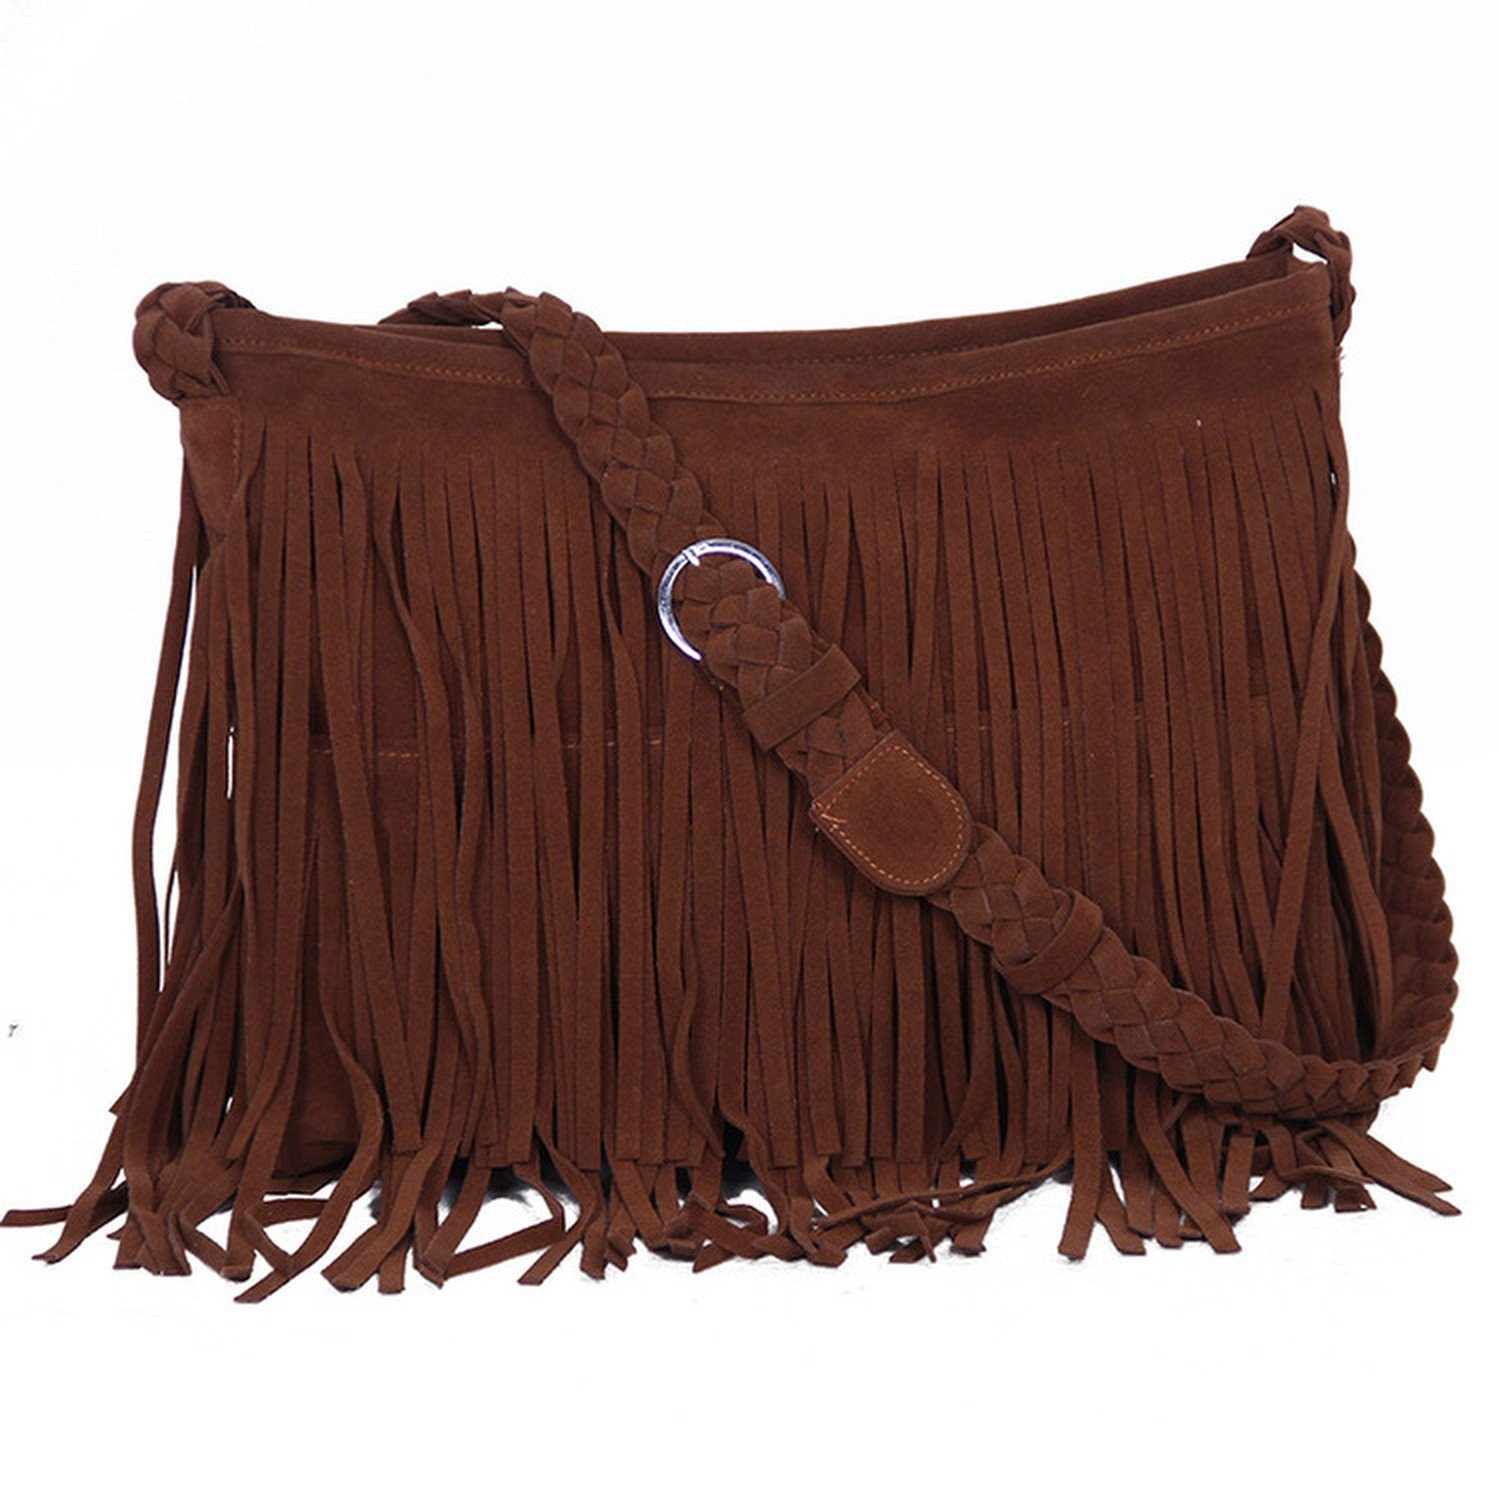 Leving 2018 new leather woven tassel shoulder bag diagonal trend ladies bag by Leving Wallets